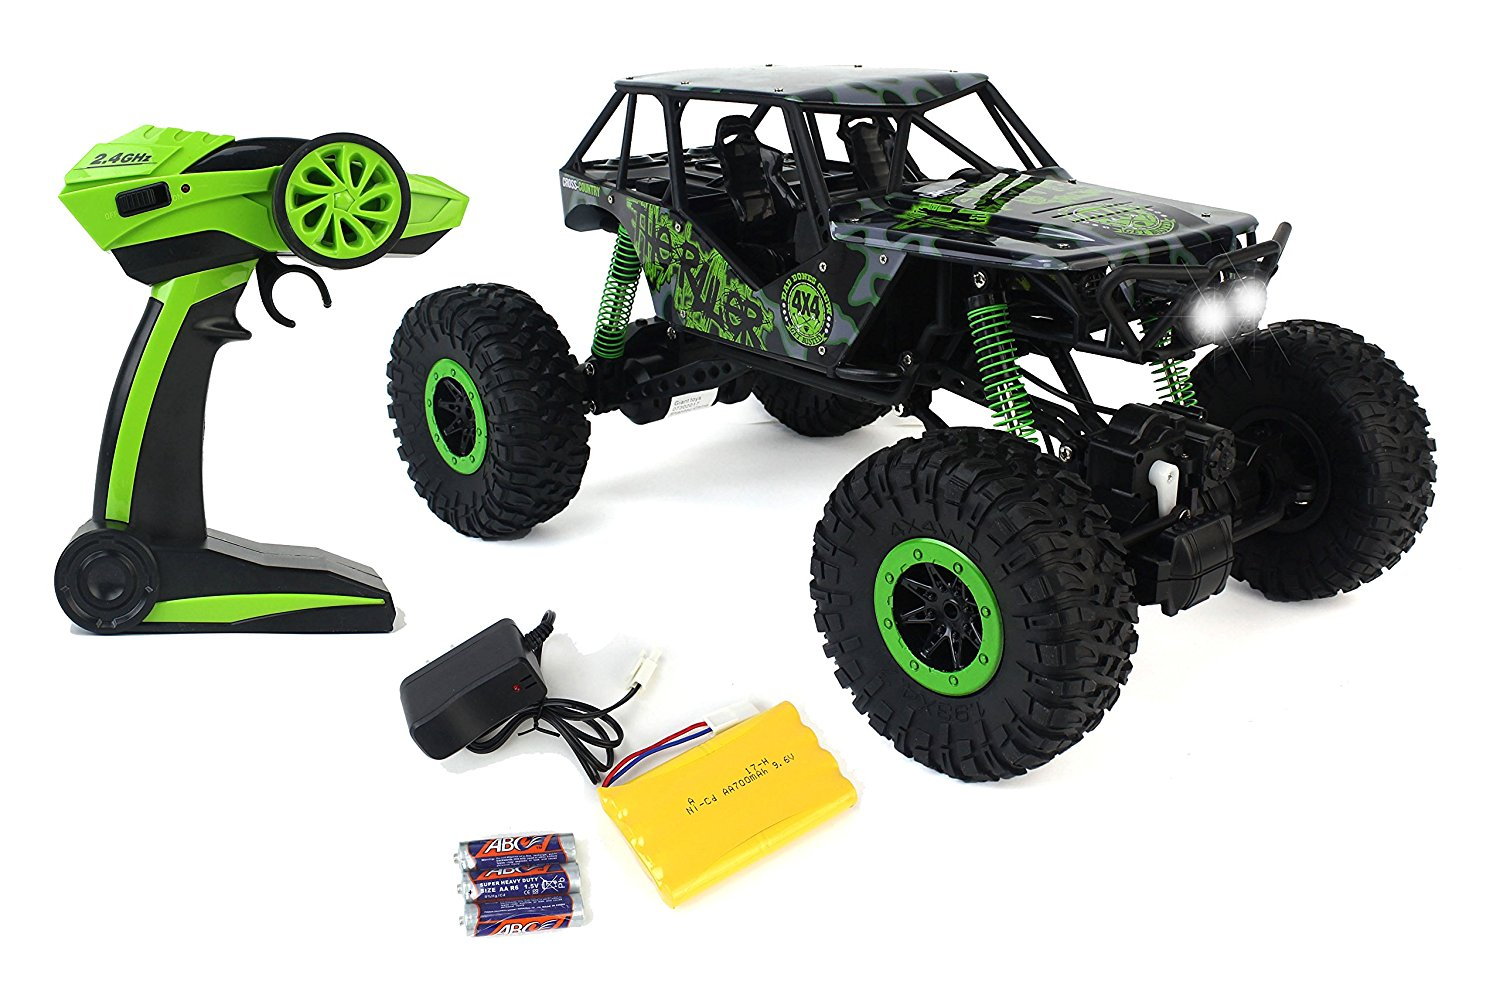 Remote Control Crazy SUV Rock Crawler 4WD Green Toy Car Rally RC 2.4 GHz 1:10 Scale Size w  Working... by Velocity Toys